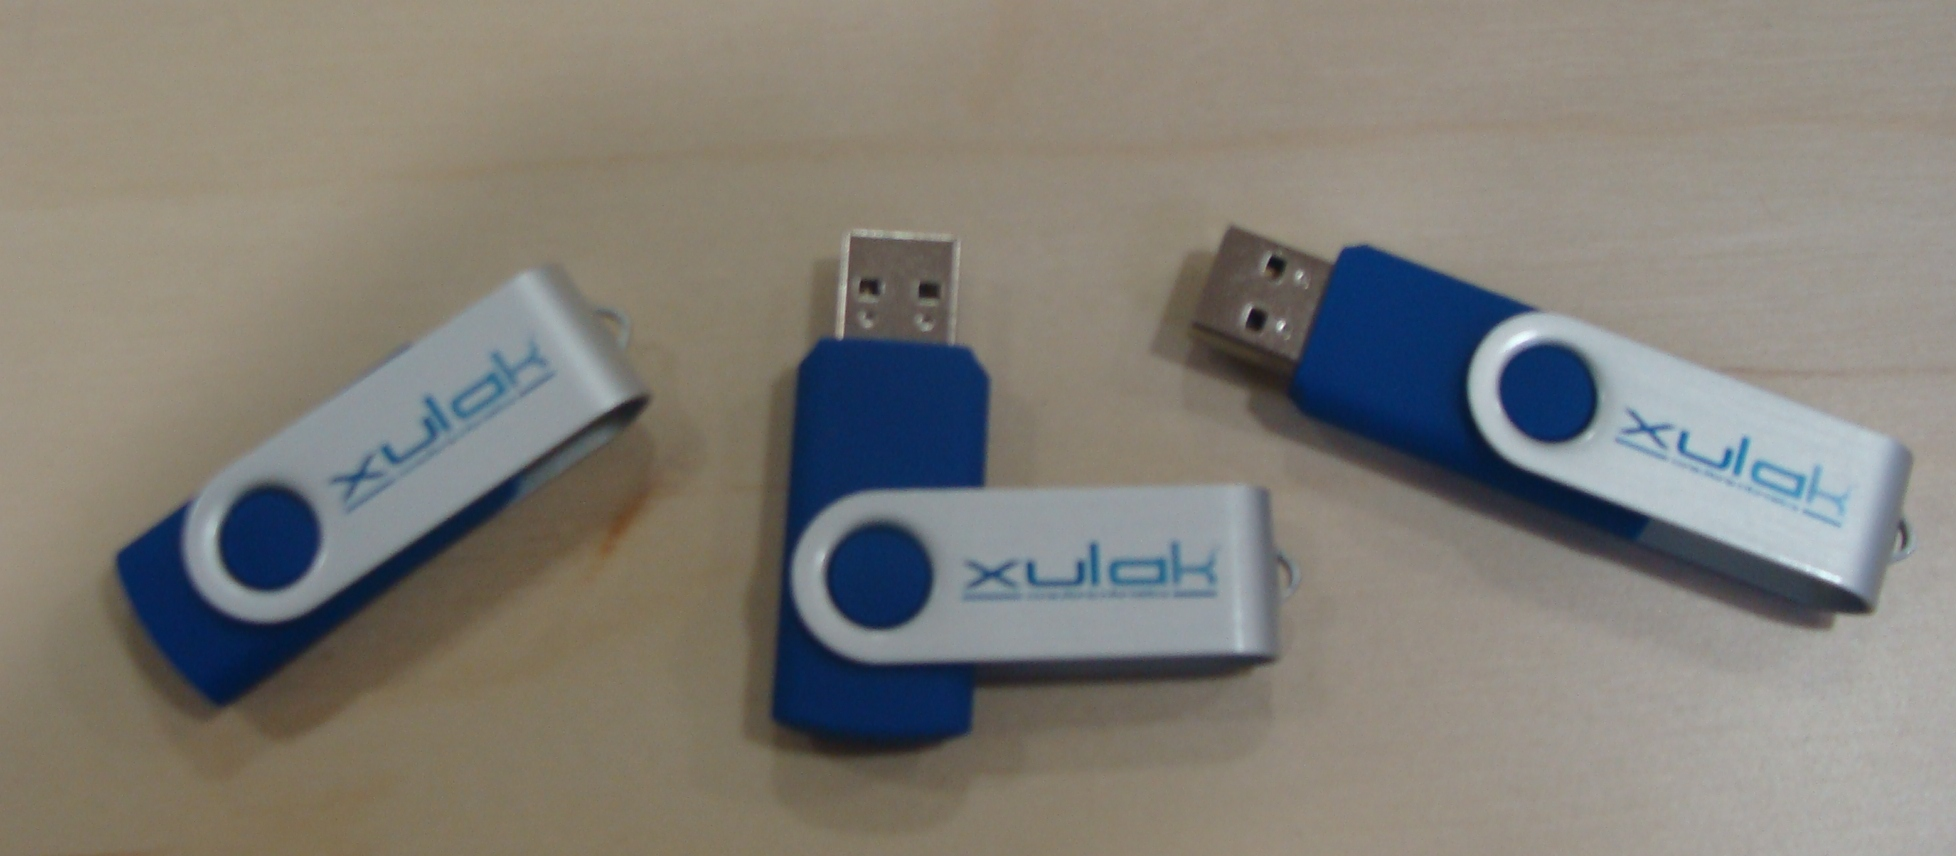 Sorteo 3 pen drives usb - XULAK IT